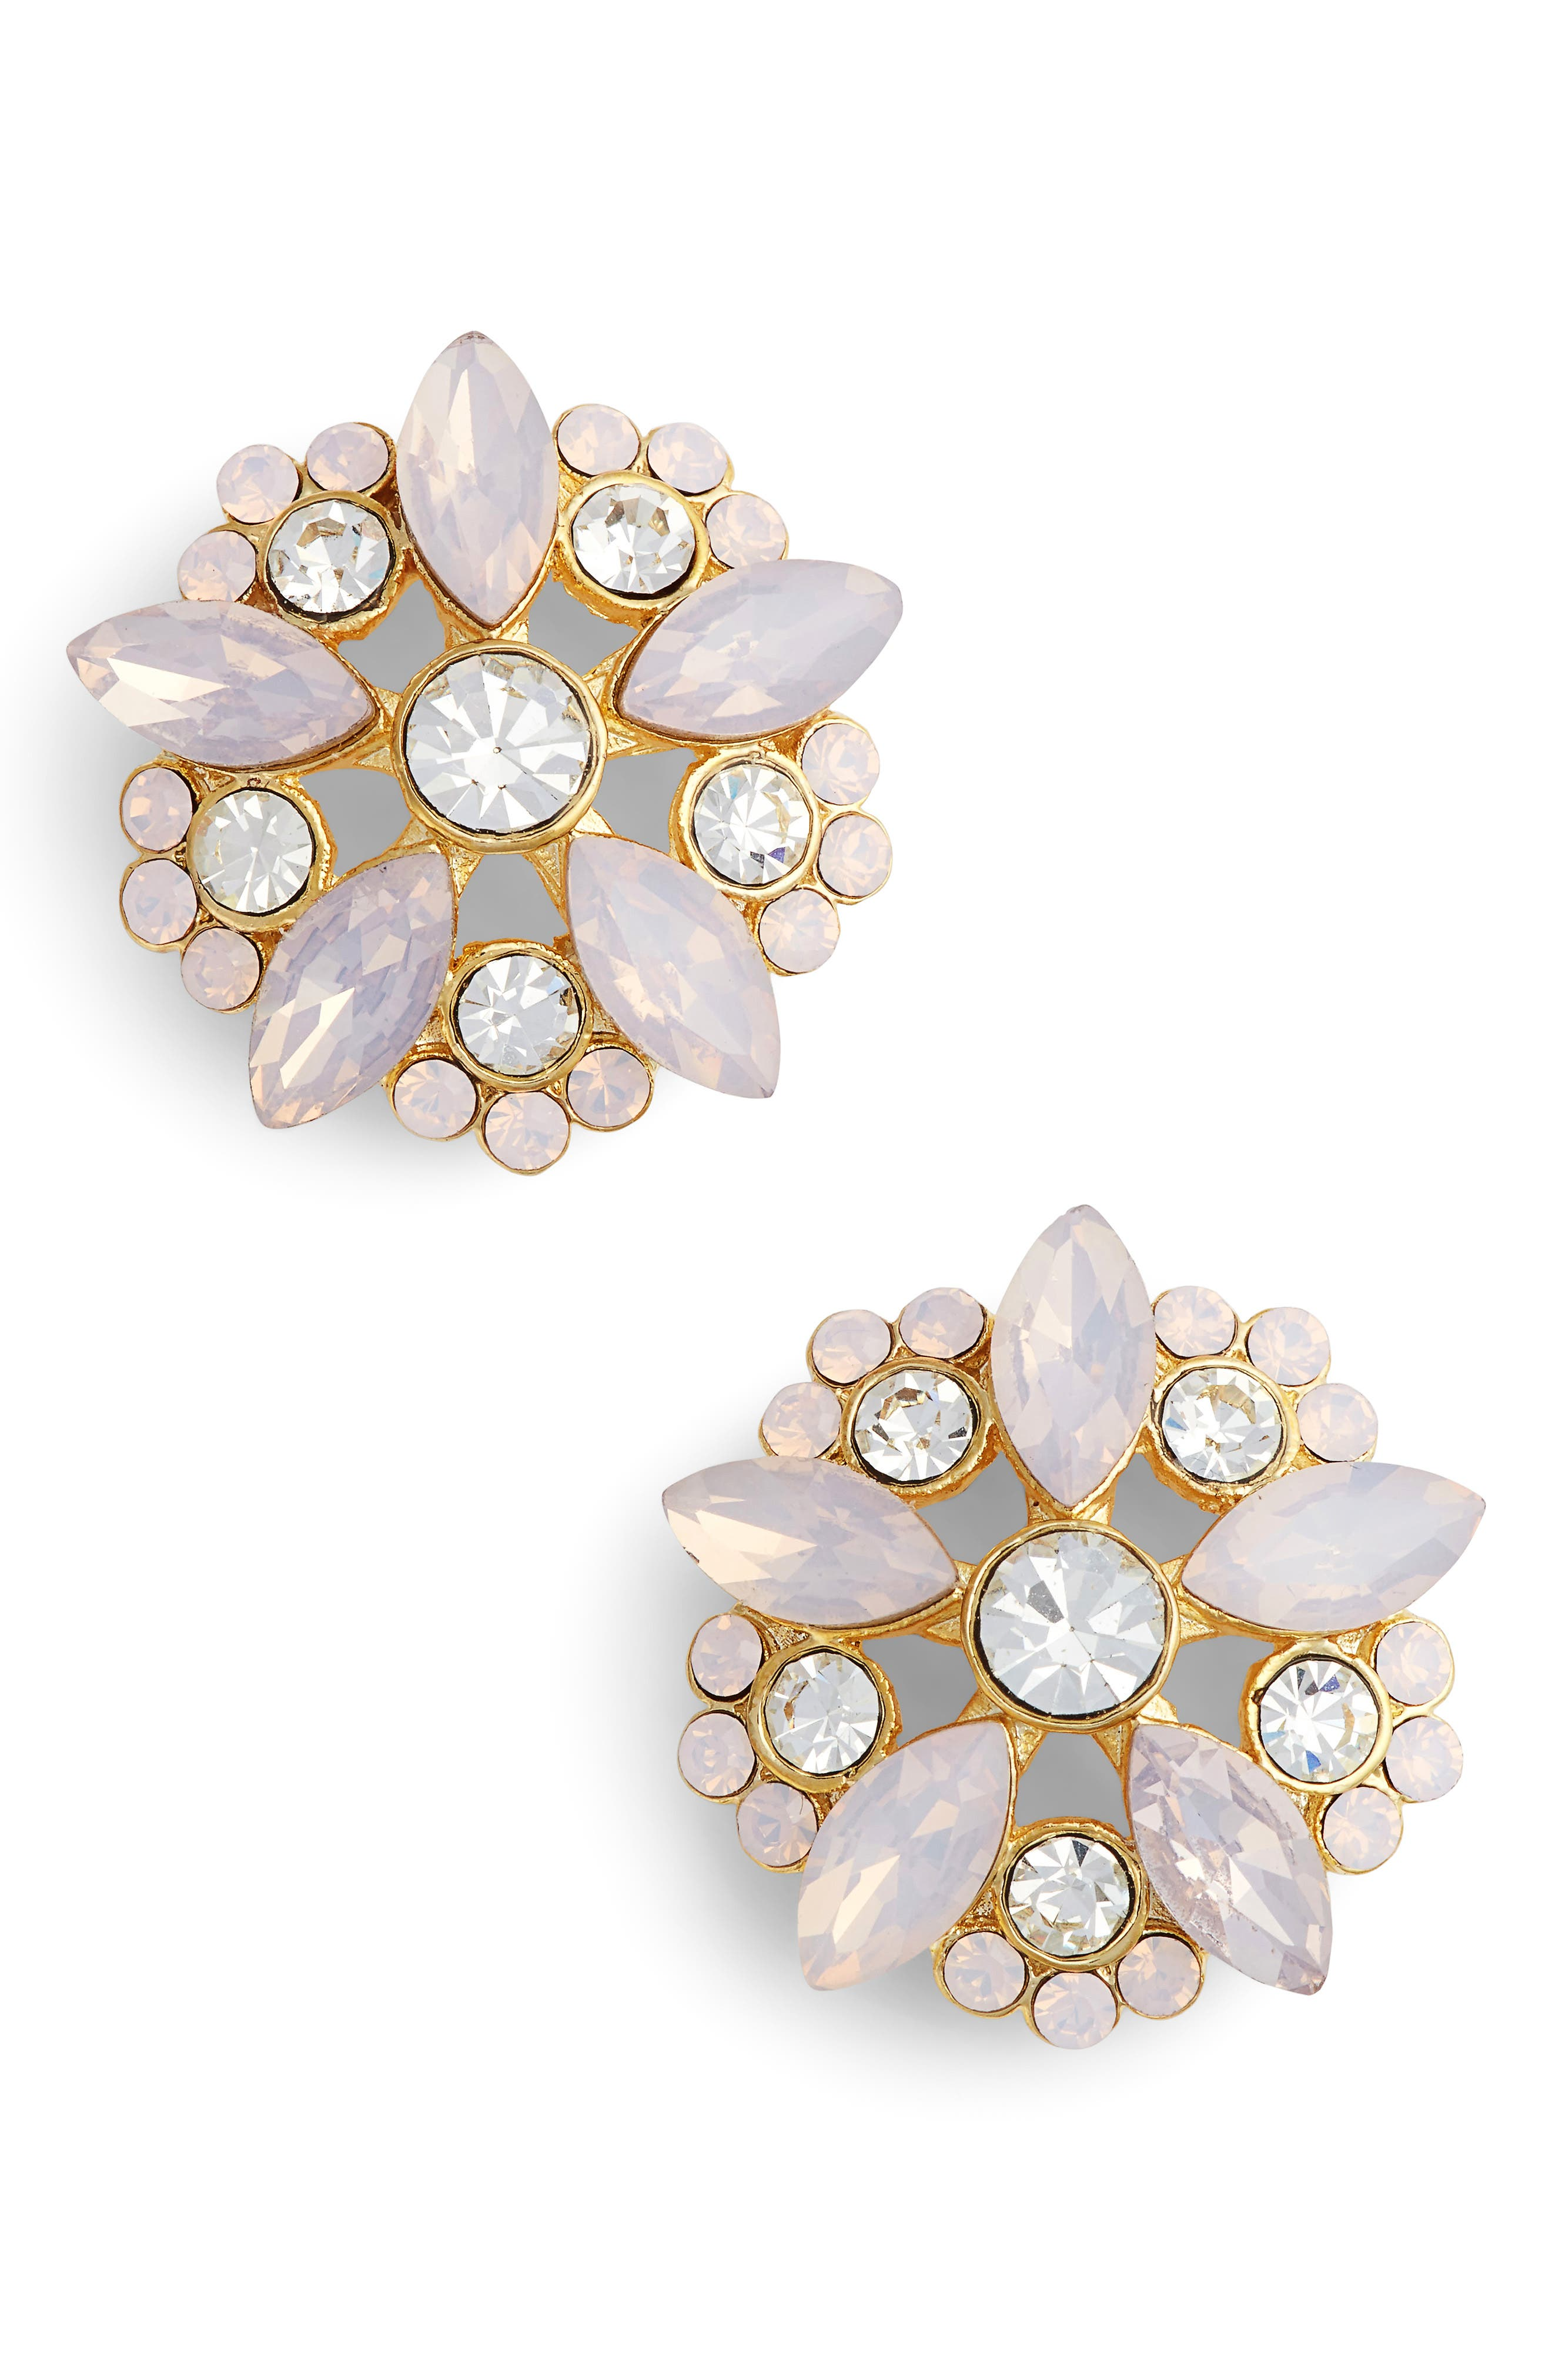 Floral Stud Earrings,                             Main thumbnail 1, color,                             GOLD/ PINK OPAL/ WHITE CRYSTAL